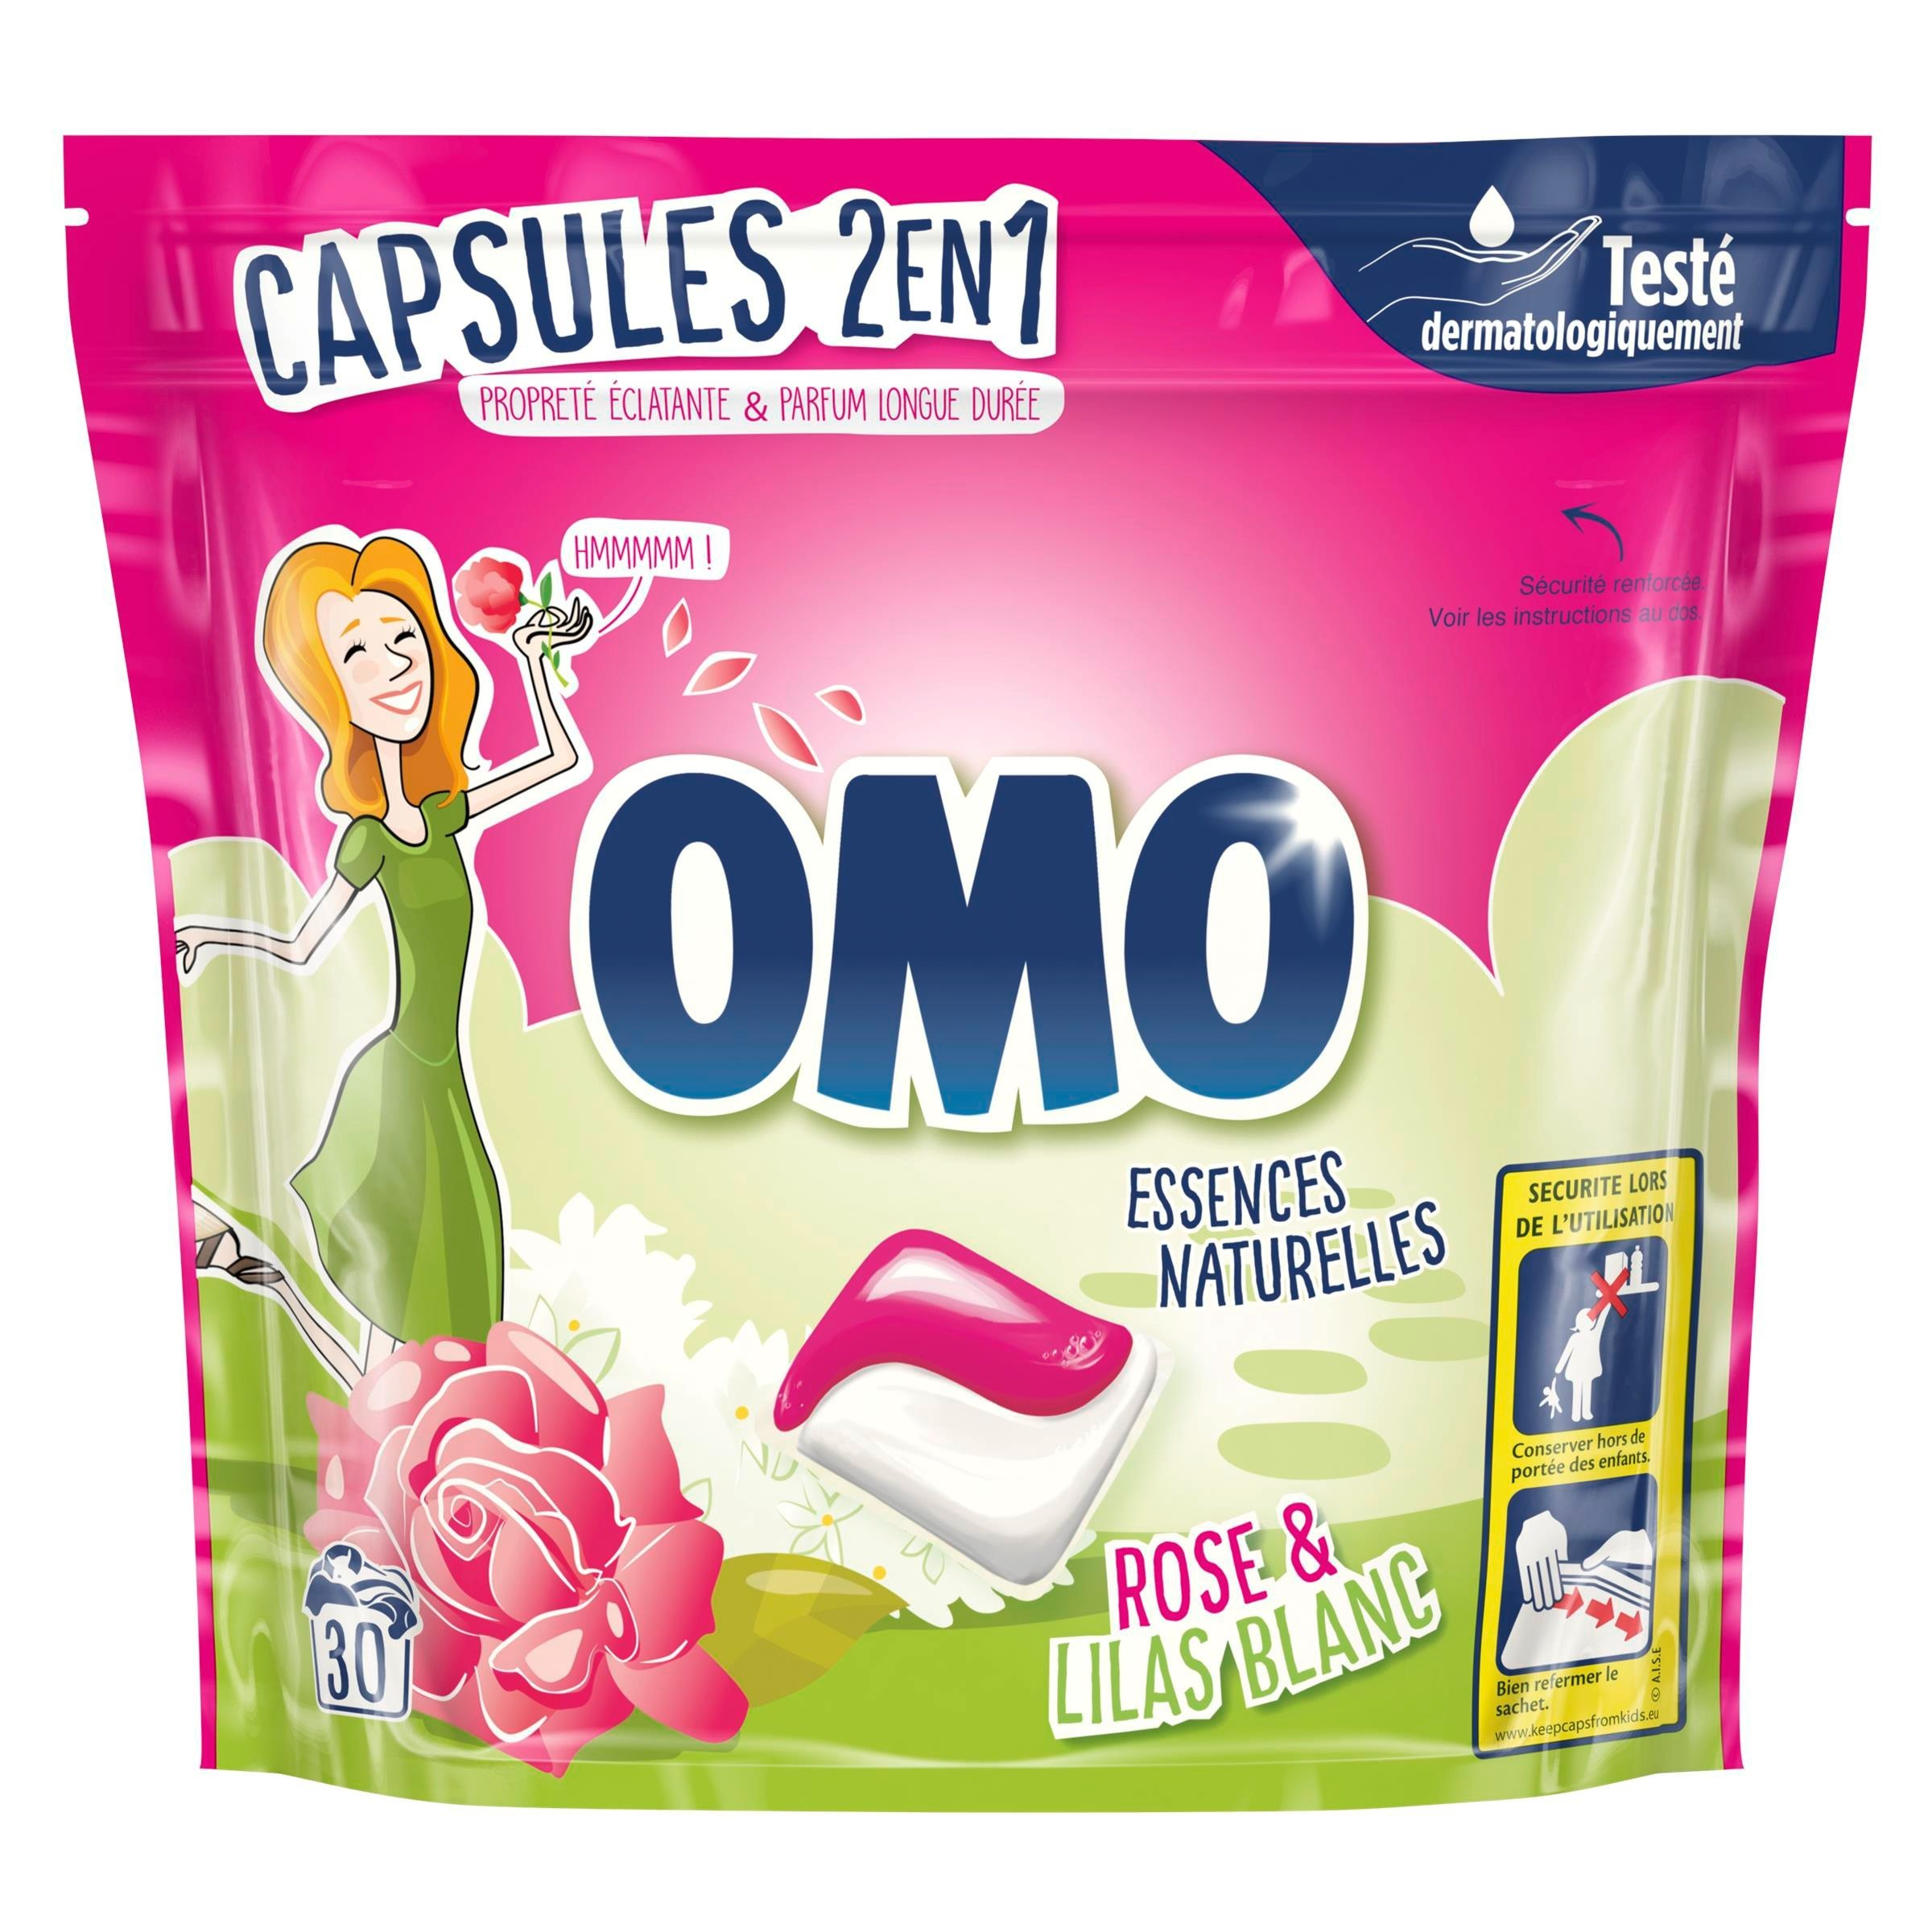 2 Truckloads of Laundry Detergent by OMO & Persil, 11,277 Pieces/10,317 Packs/3,599 Cases, Ext. Retail €102,101, Fauverney, FR